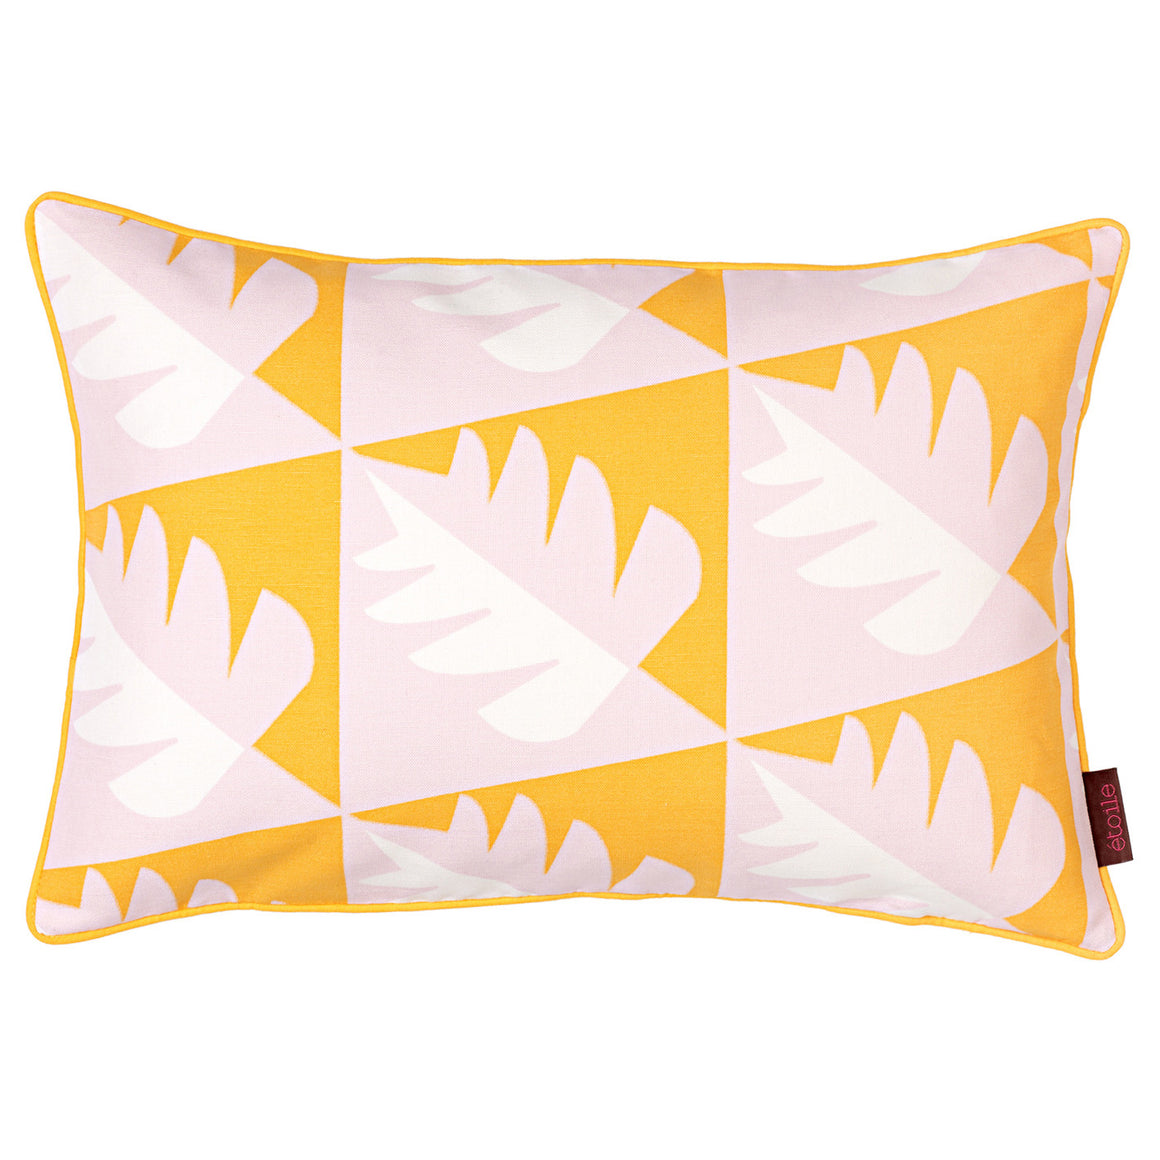 Betty Geometric Tree Pattern Rectangle Decorative Throw Pillow  in Saffron Yellow & Light Tea Rose Pink 12x18""